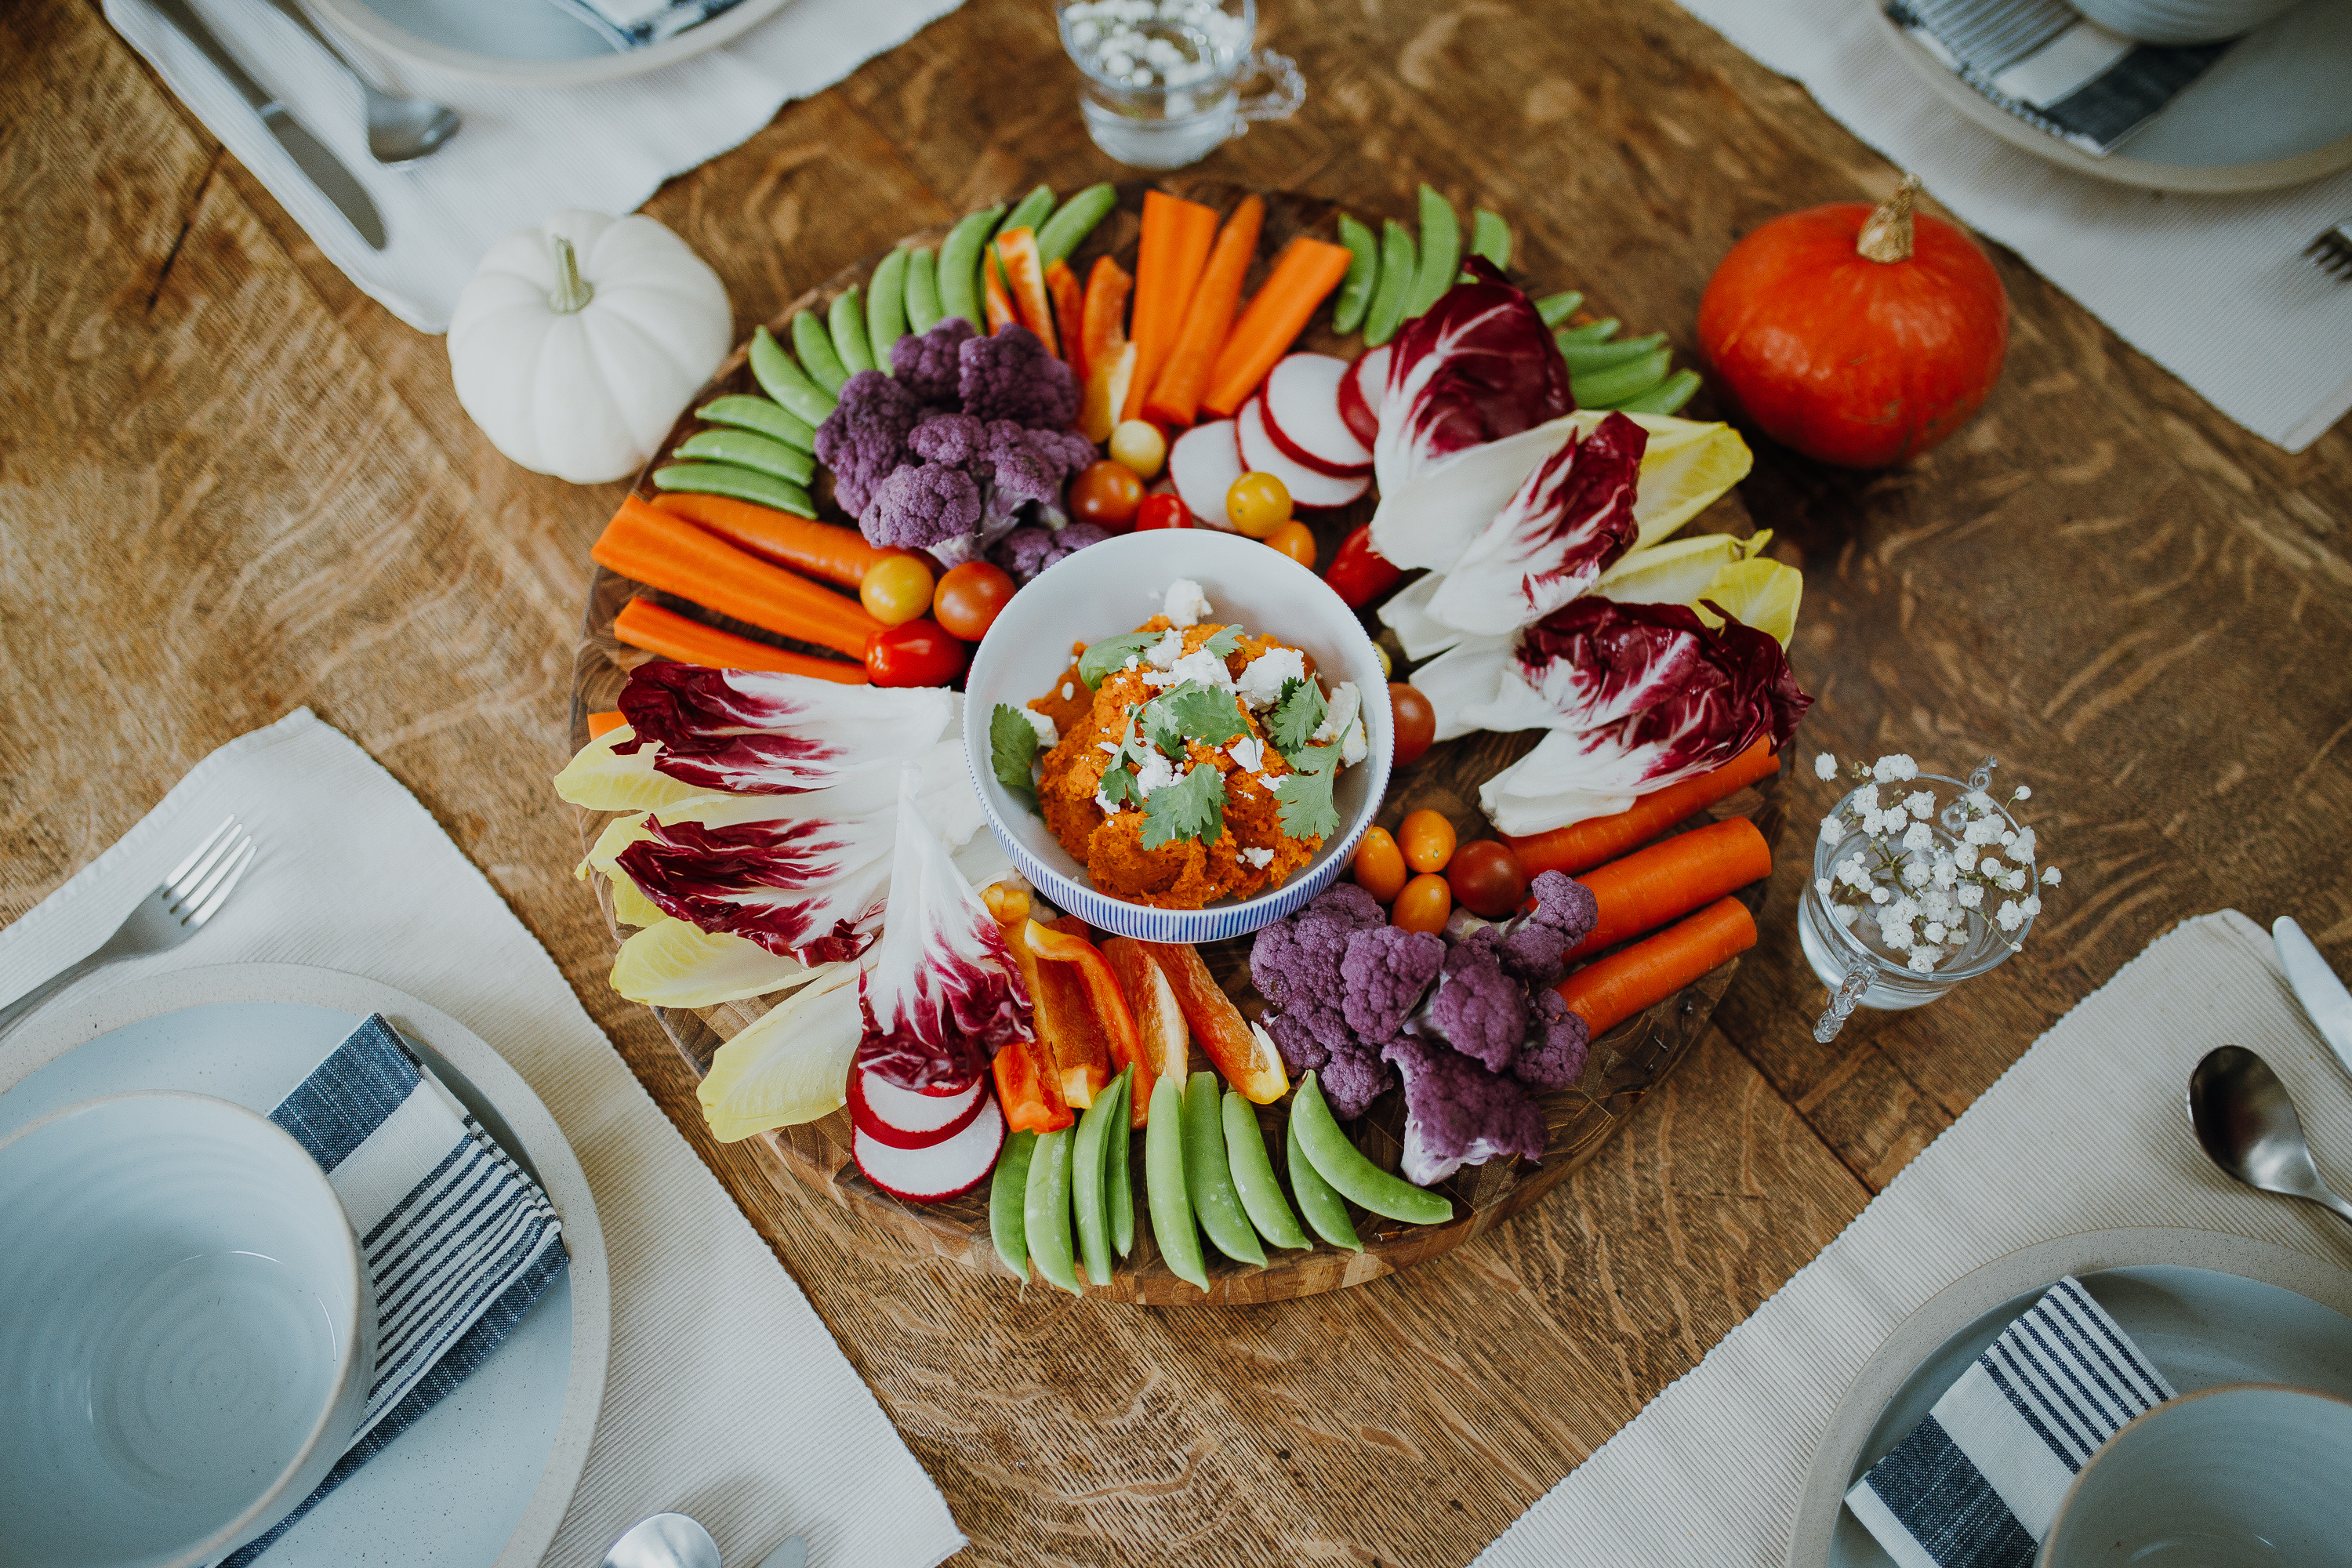 Crudité Platter with Creamy Carrot Dip